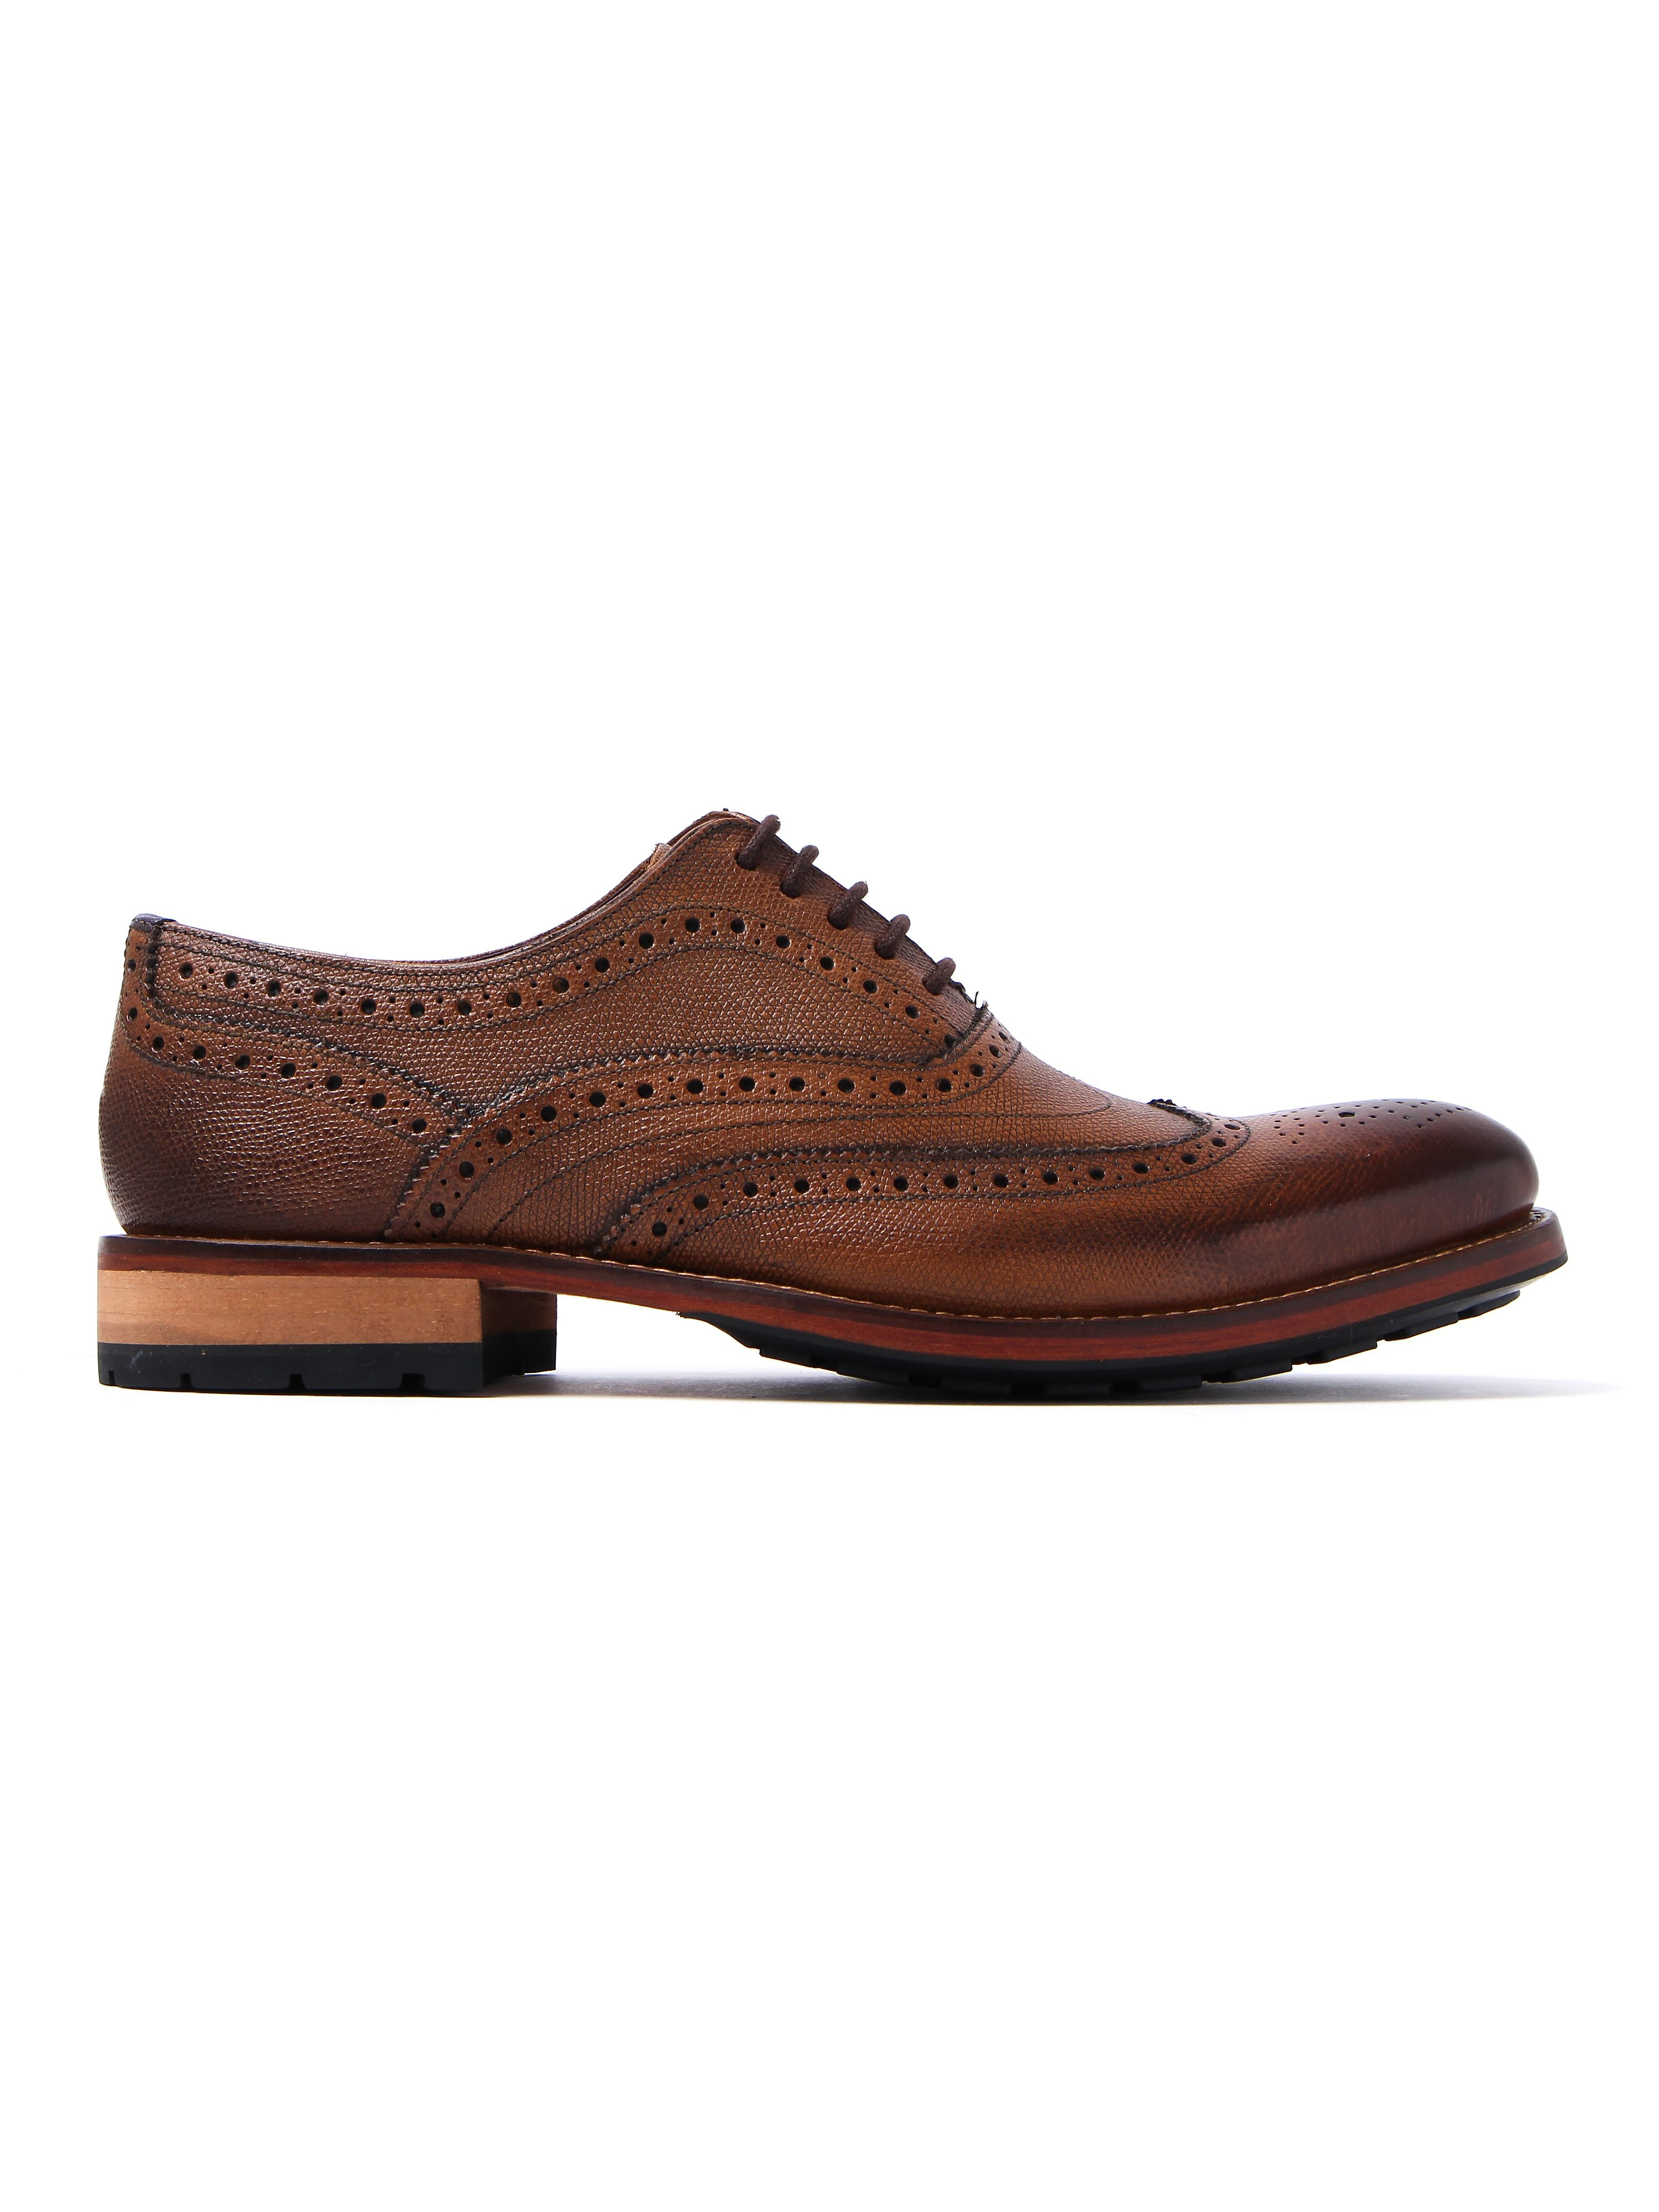 Ted Baker Men's Guri Leather Oxford Brogues - Tan